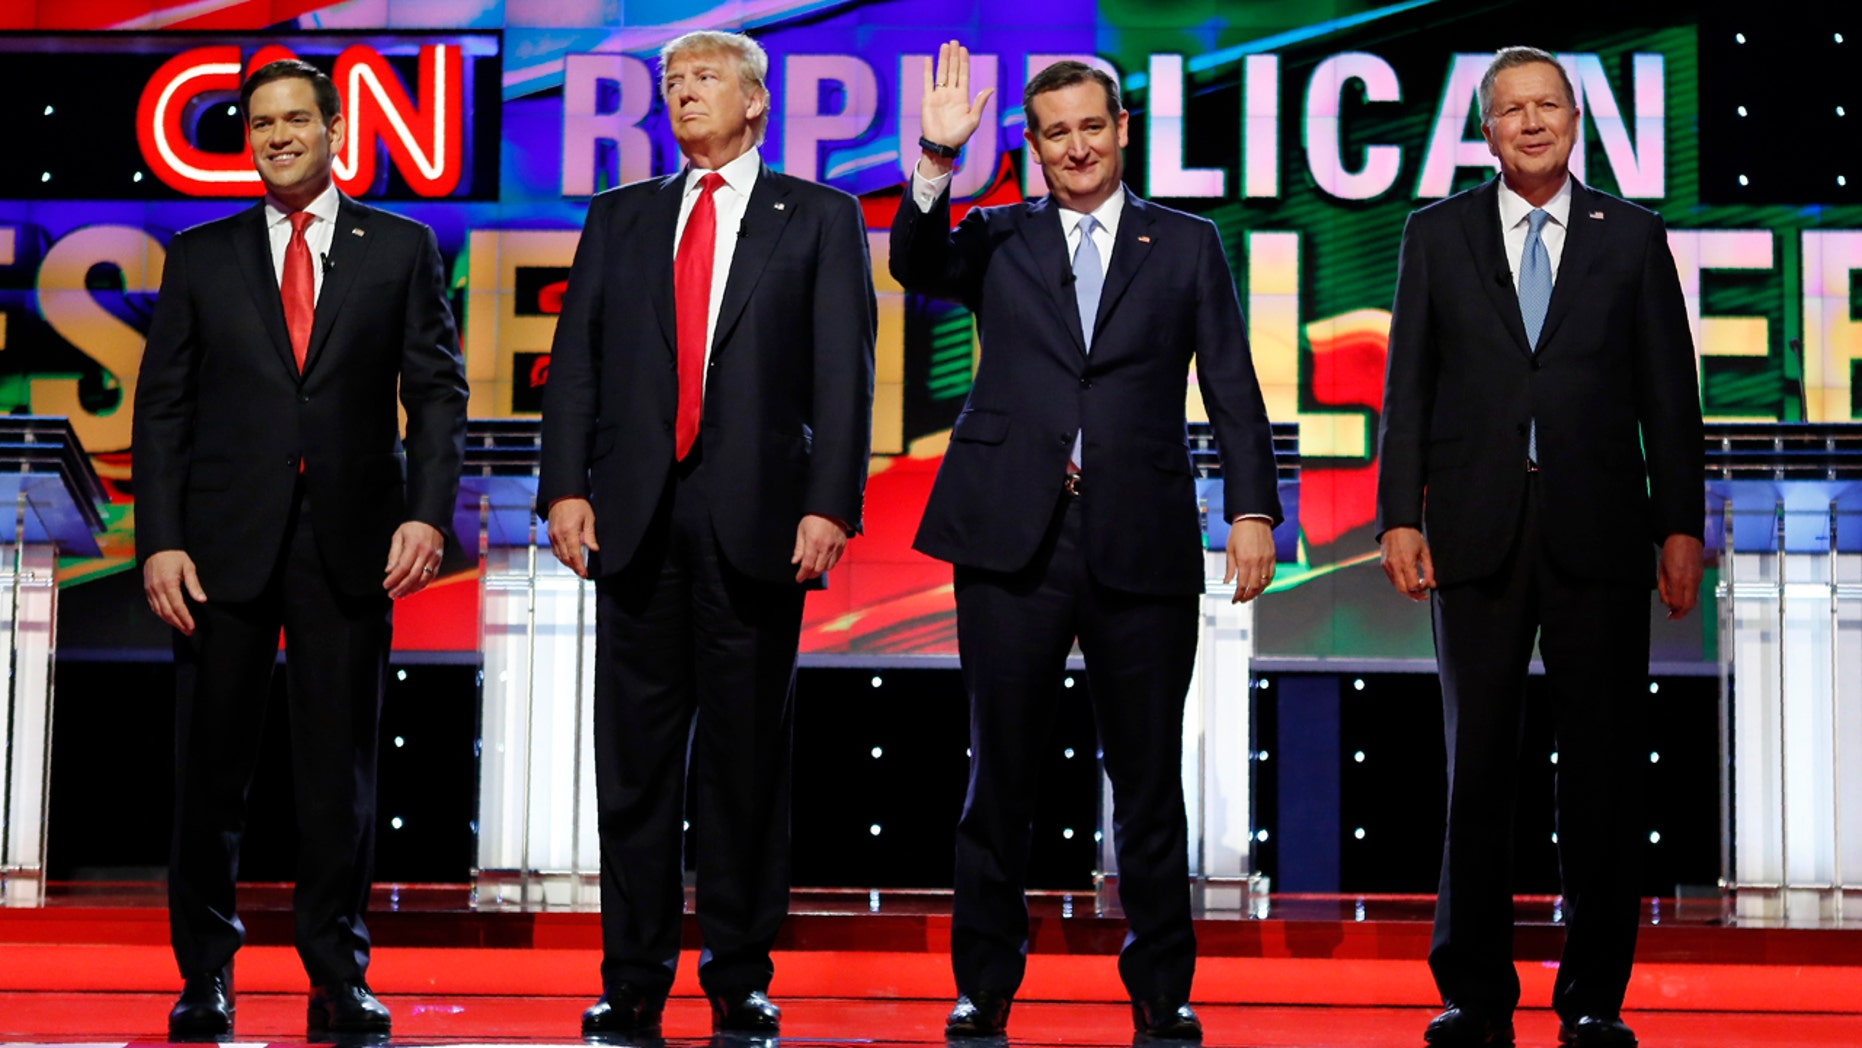 Republican U.S. presidential candidates (L-R) Marco Rubio, Donald Trump, Ted Cruz and John Kasich stand together onstage at the start of the Republican candidates debate sponsored by CNN at the University of Miami in Miami, Florida, March 10, 2016.  REUTERS/Joe Skipper - RTSA9ZC